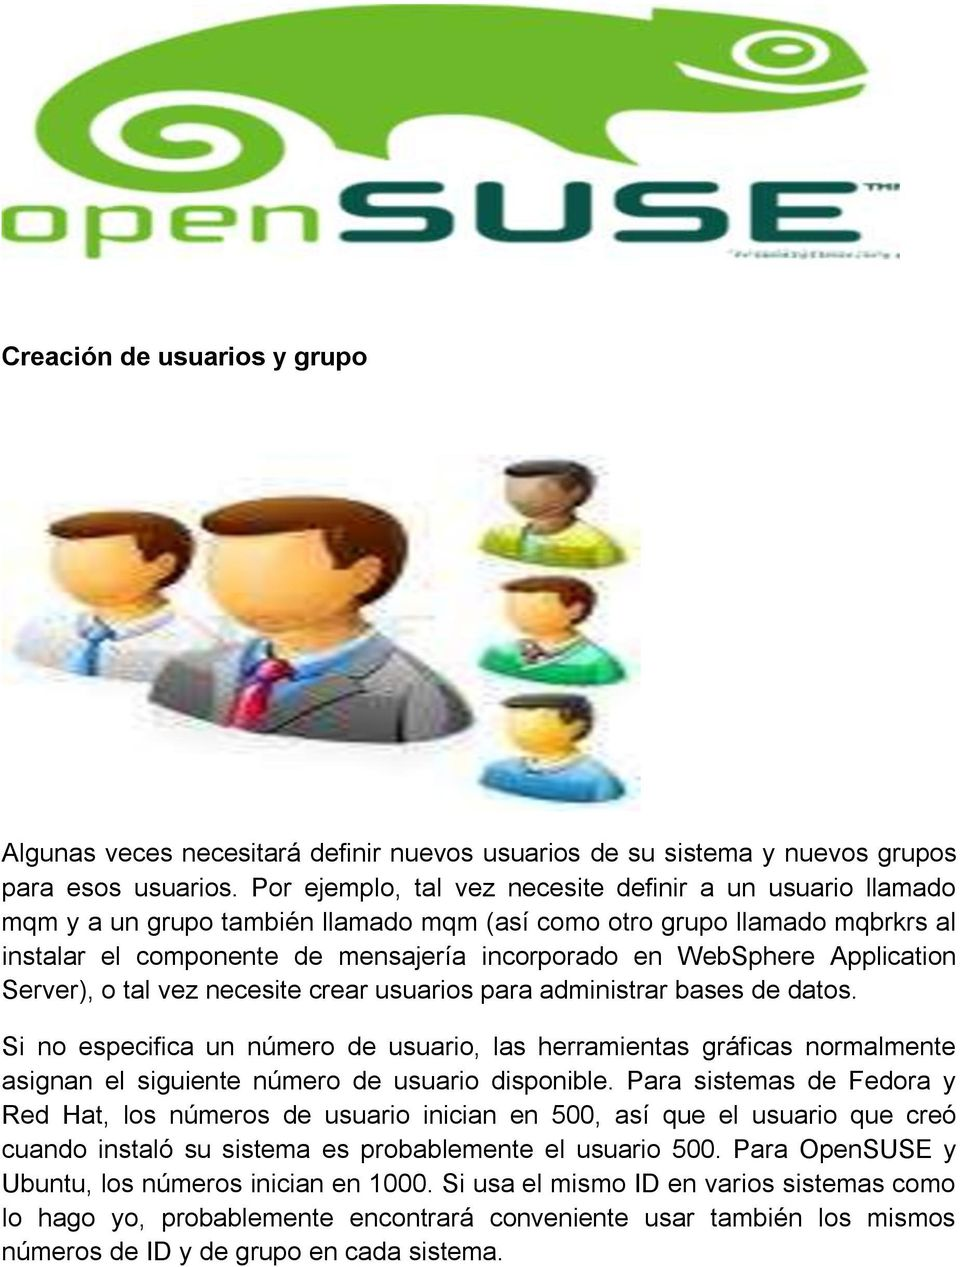 Application Server), o tal vez necesite crear usuarios para administrar bases de datos.